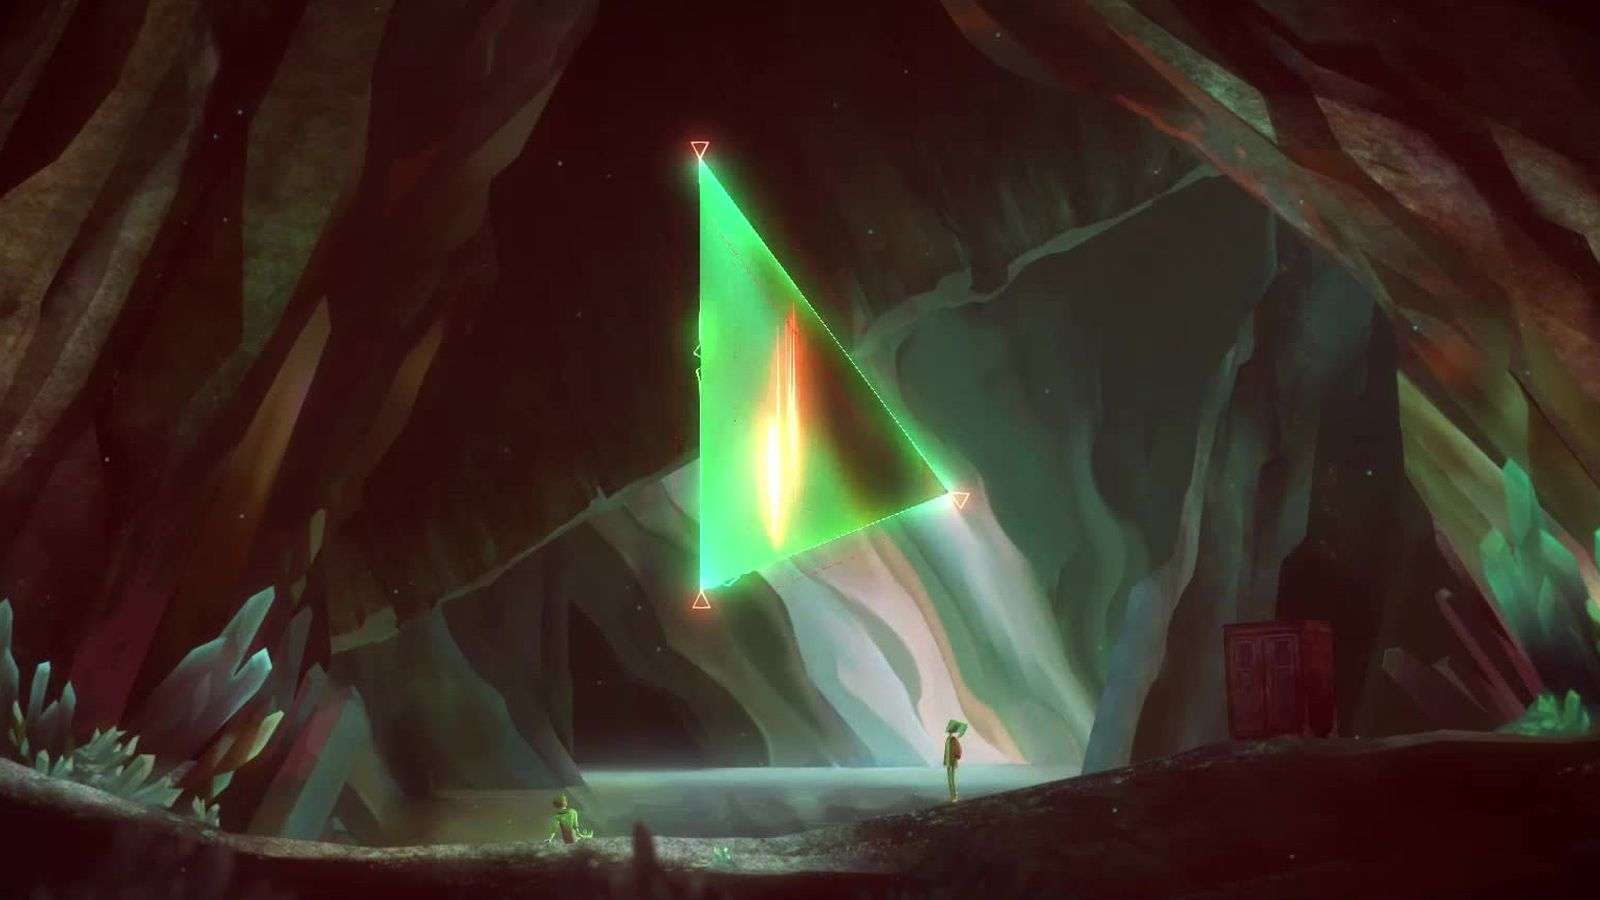 ... Oxenfree, 2015's coolest-looking adventure game | Polygon View Image